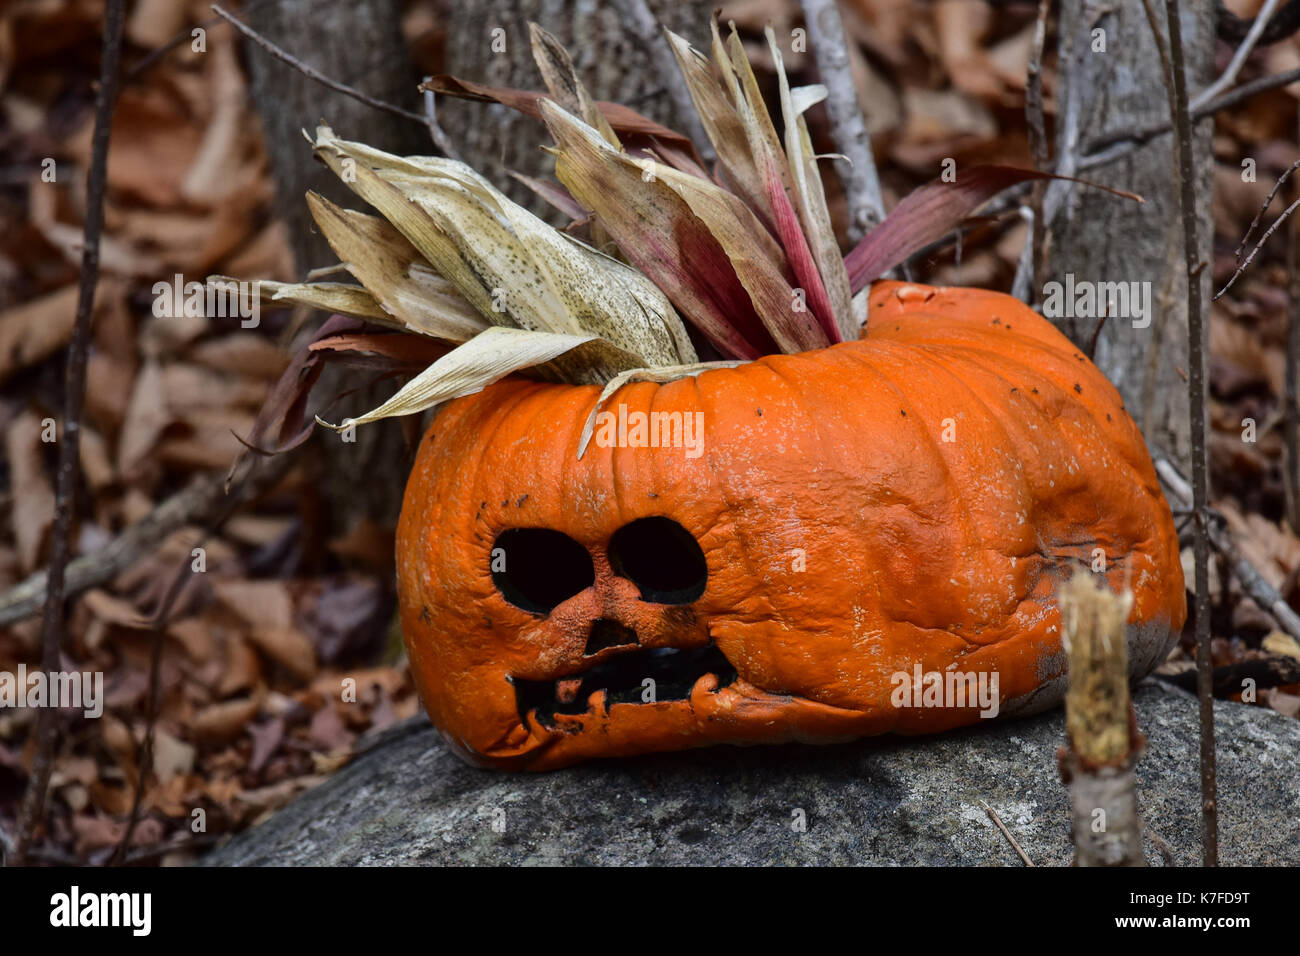 discarded halloween pumpkin, cucurbita pepo, sitting on a rock in